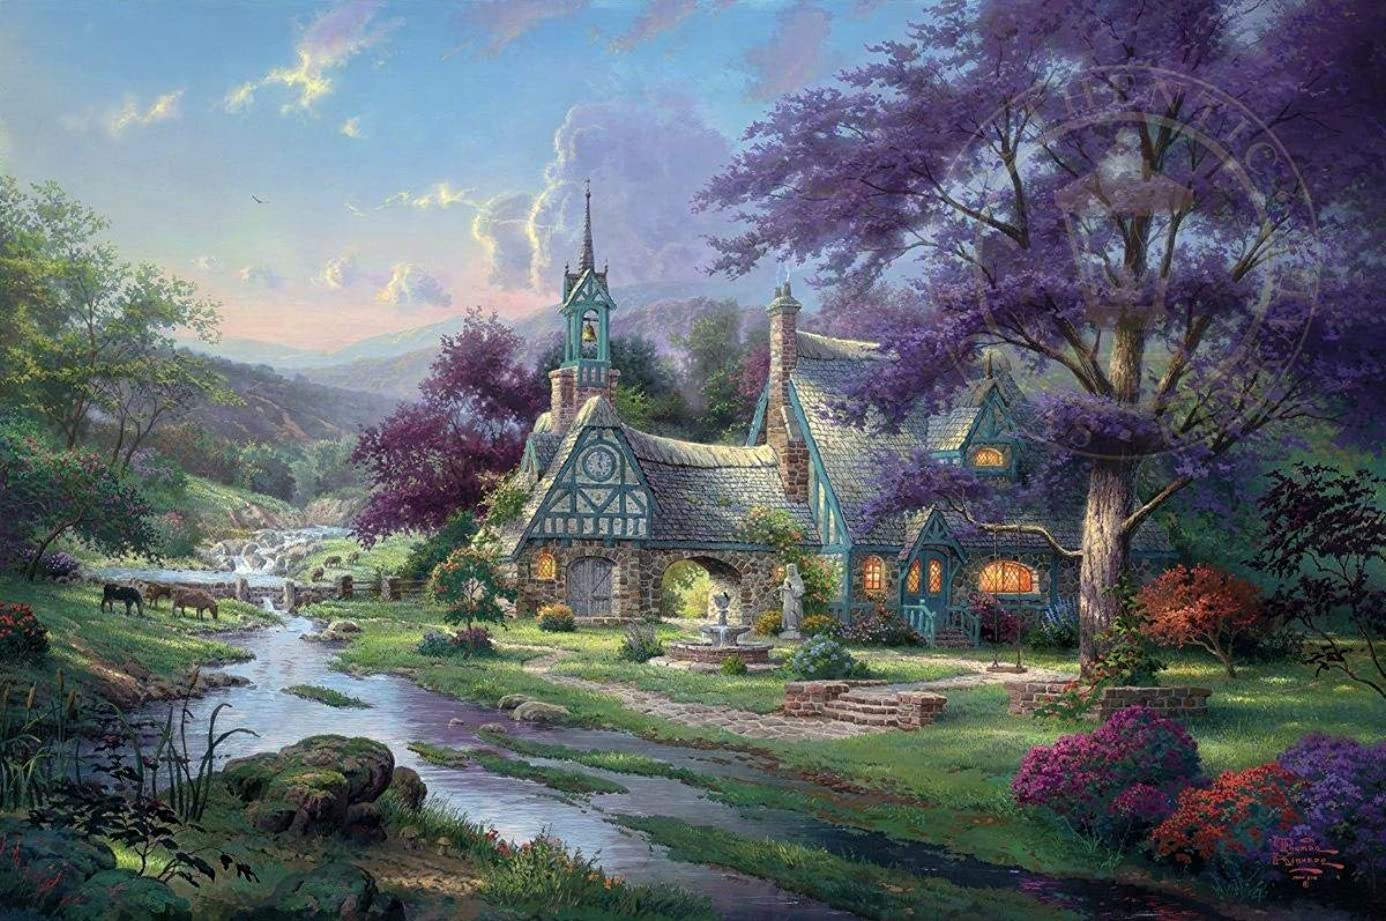 Diamond Painting Thomas Kinkade 12X16 inches 5D DIY Diamond Painting Full Round Drill Rhinestone Embroidery for Wall Decoration rbm8211539